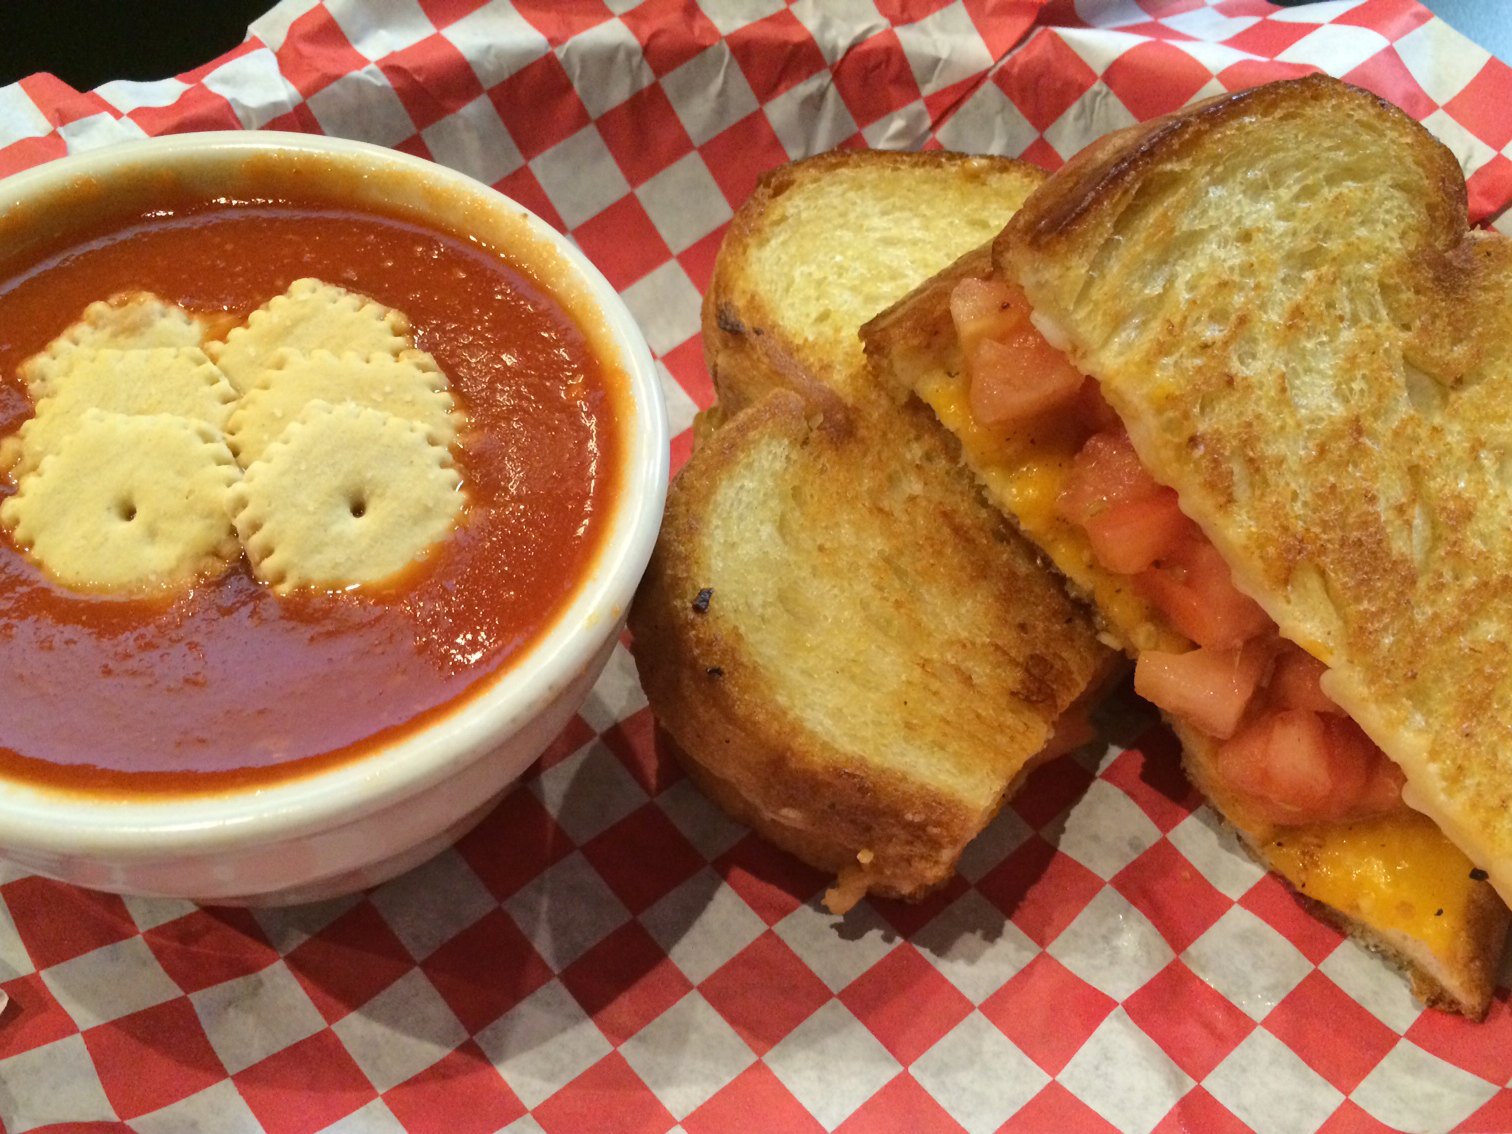 The Tom + Chee is a sandwich consisting of sourdough, cheddar, mozzarella, tomatoes, garlic seasoning, served with tomato soup. Credit: Courtesy of Courtesy of Tiffany Owen